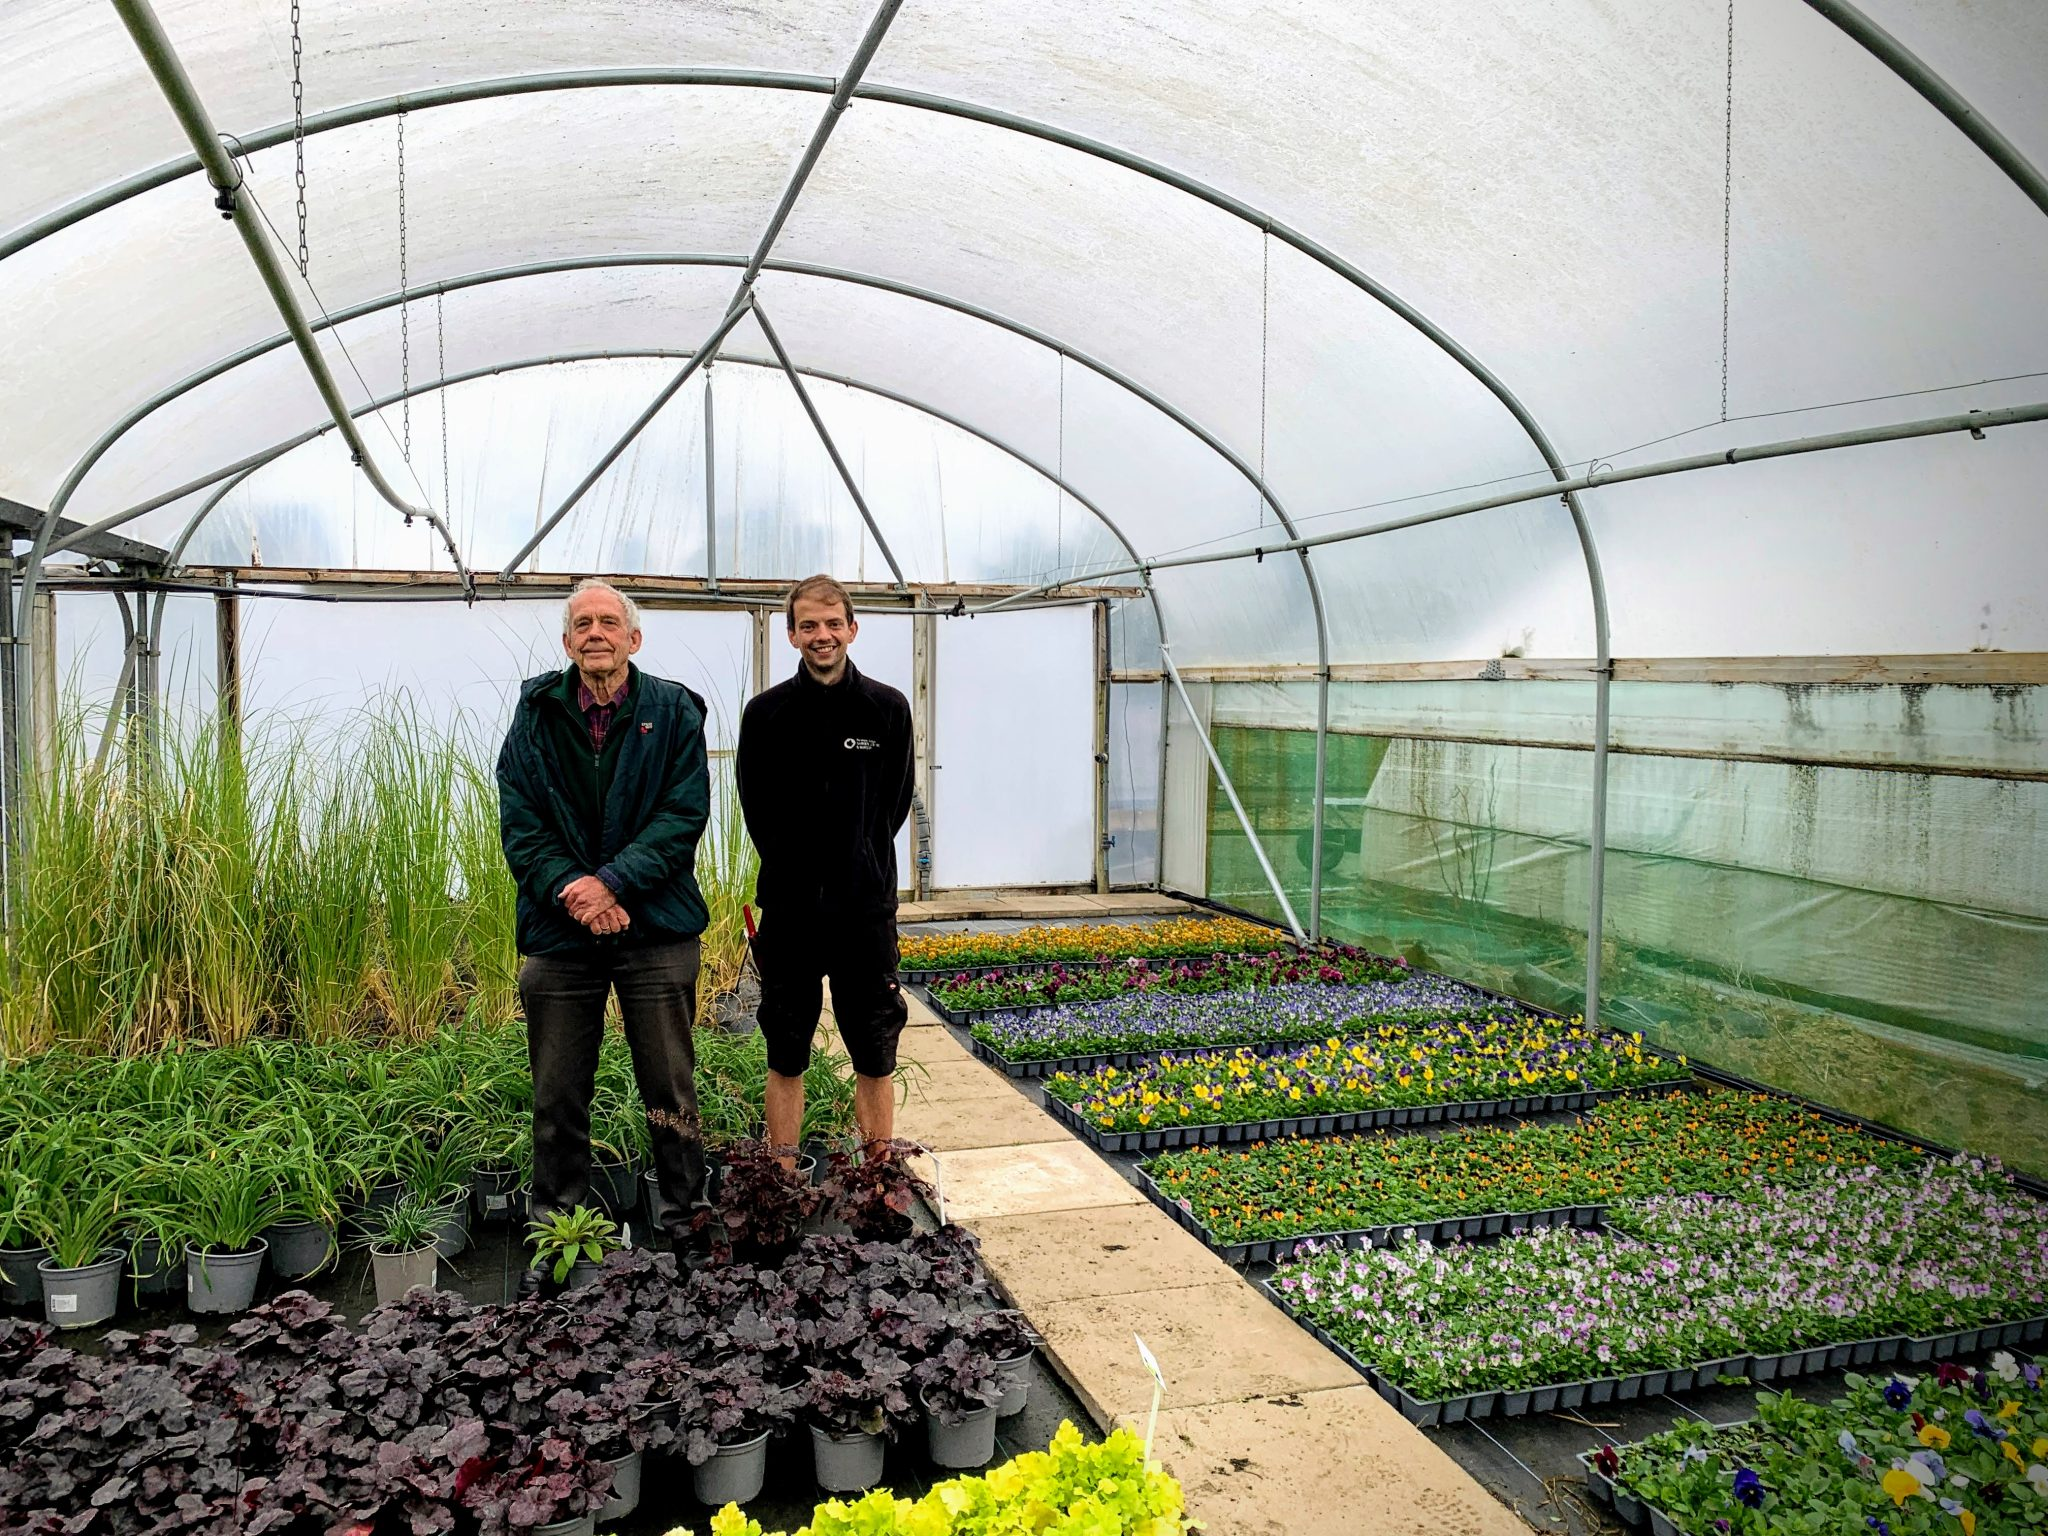 Pershore College Garden Centre and Nursery celebrates 60 years of business